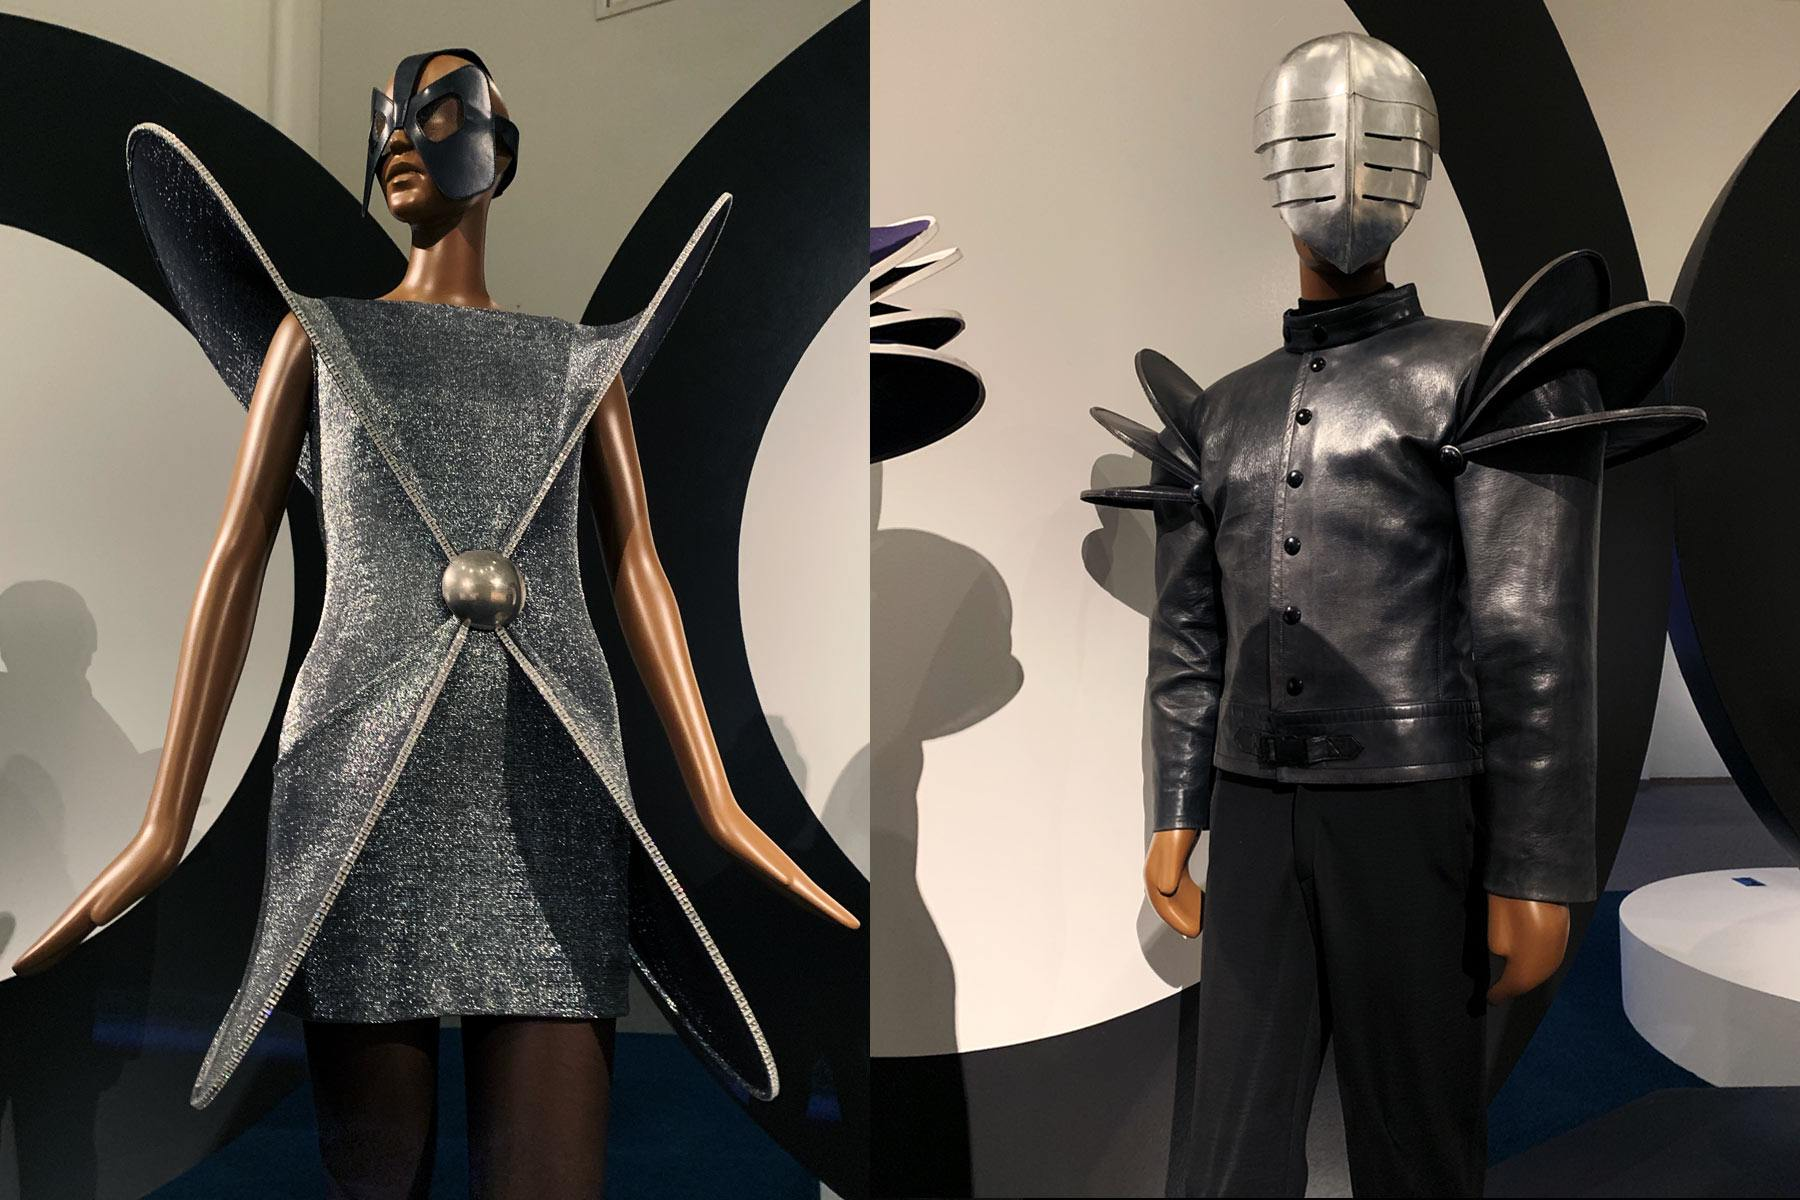 Vintage Pierre Cardin avant garde fashion at the Brooklyn Museum. Photographed by Alexander Thompson for Ponyboy magazine.